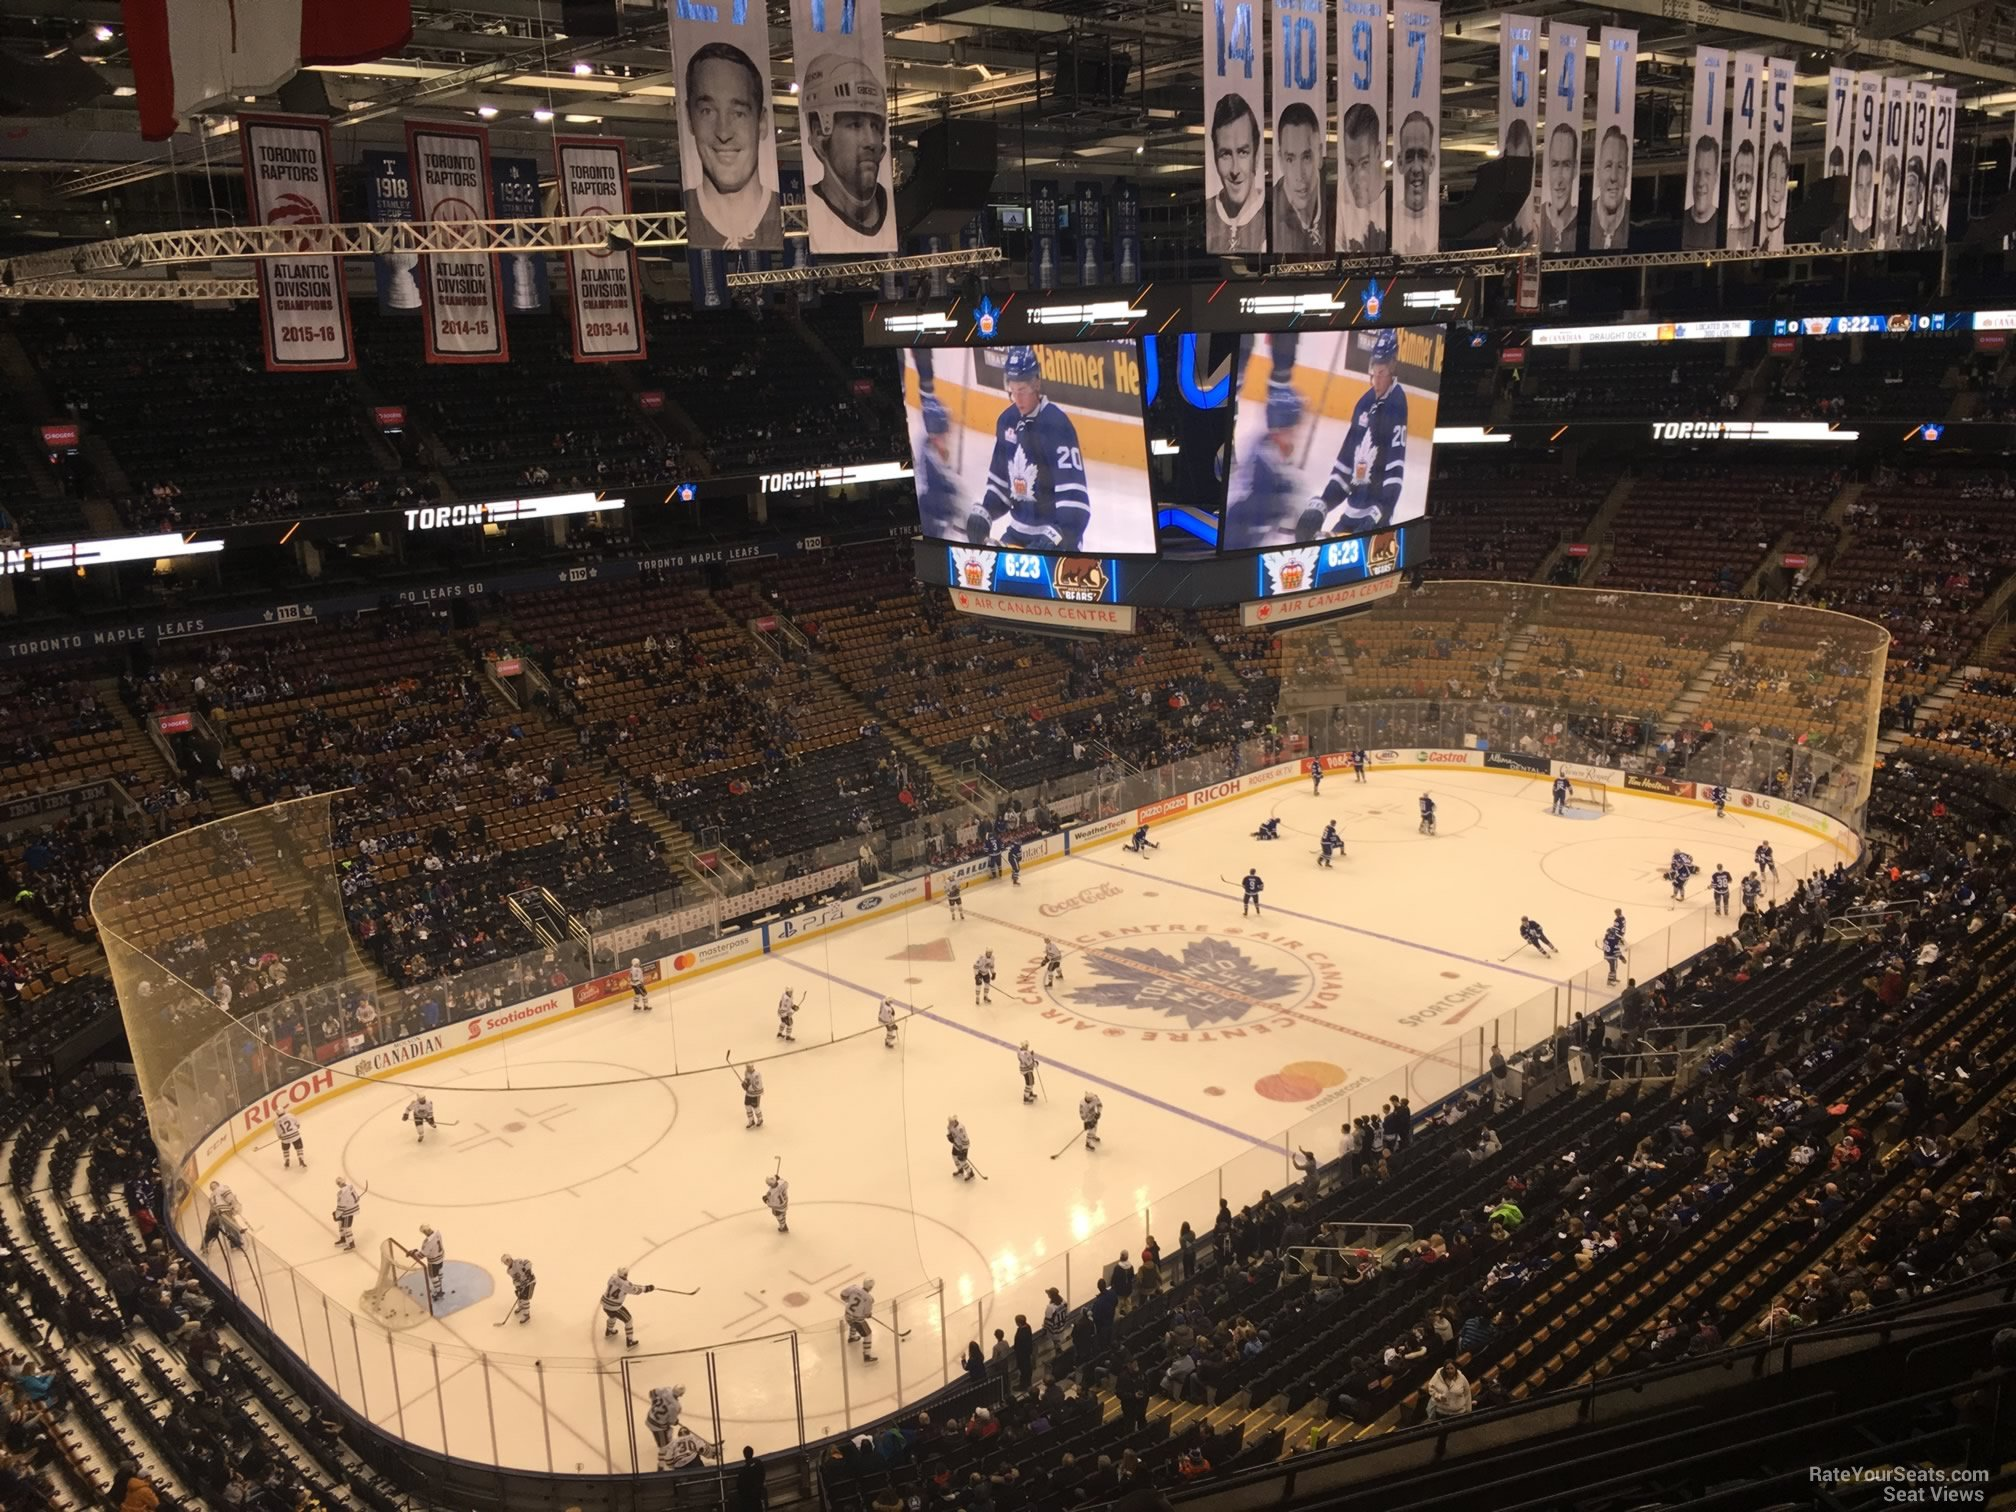 Toronto Maple Leafs Seat View for Scotiabank Arena Section 312, Row 10